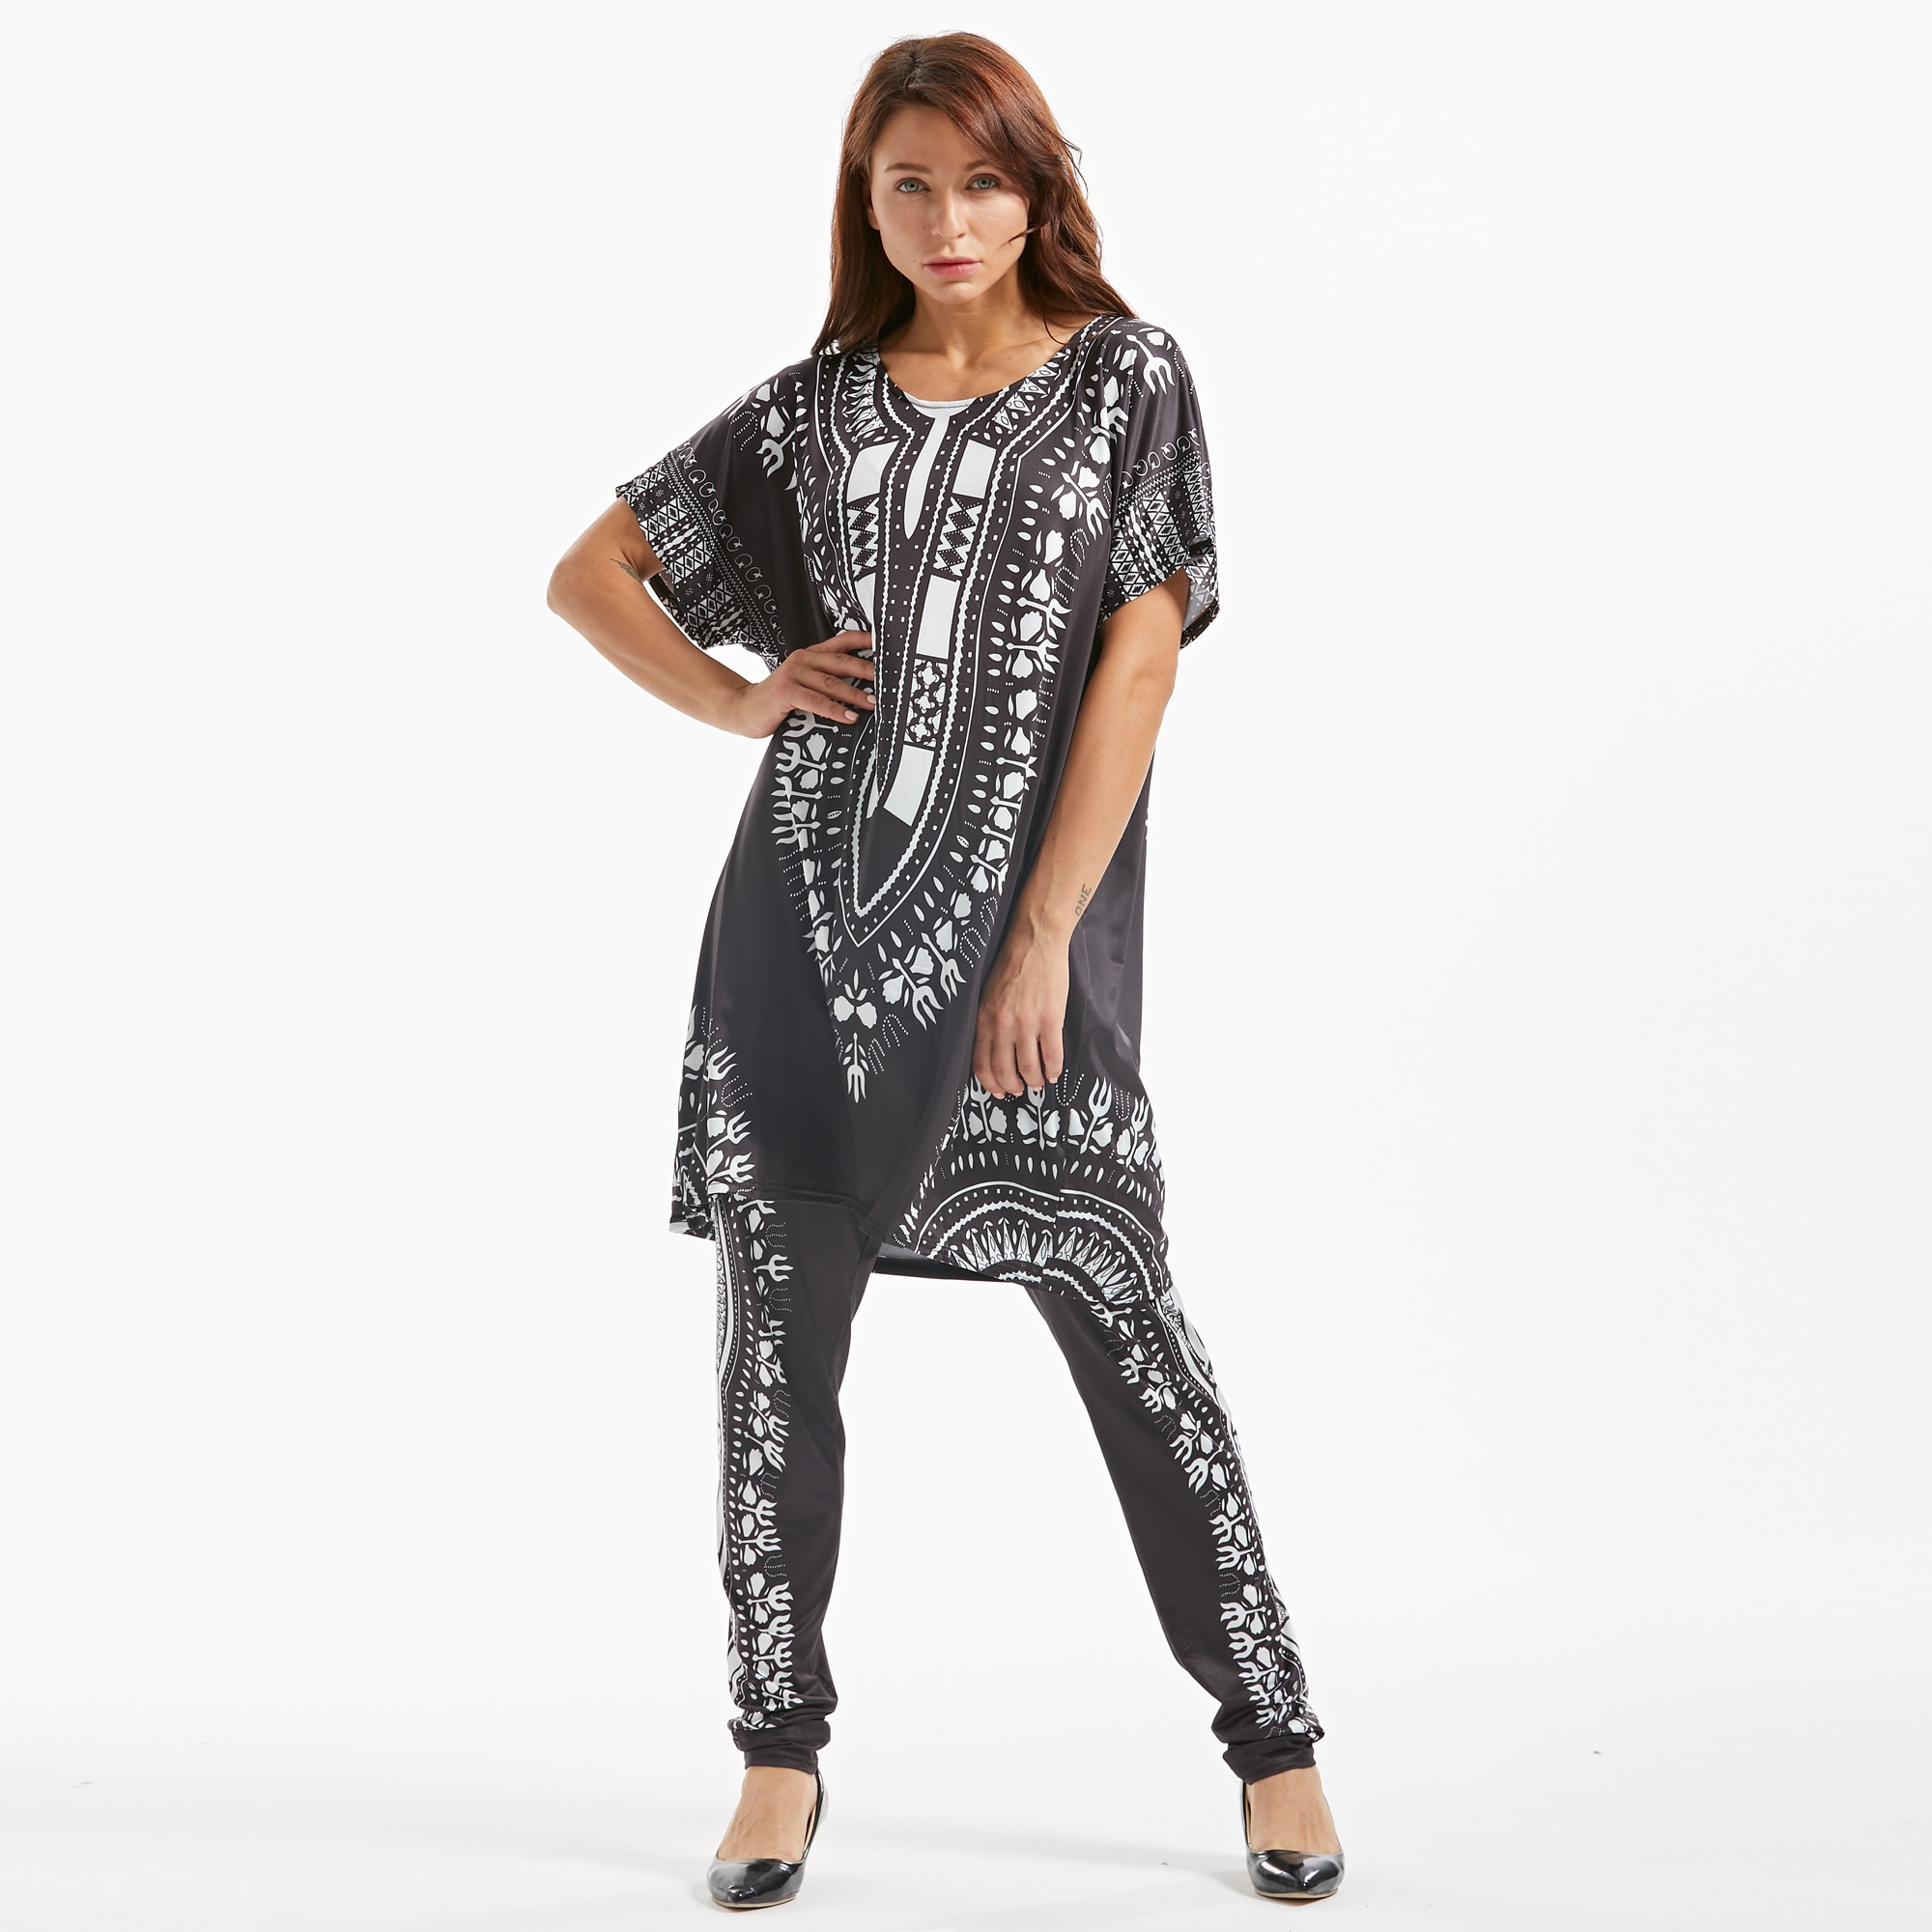 African Print Dresses For Women Dashiki Traditional African Two Piece Set Print Tracksuit Bazin Tops Pants Clothing Female Suit